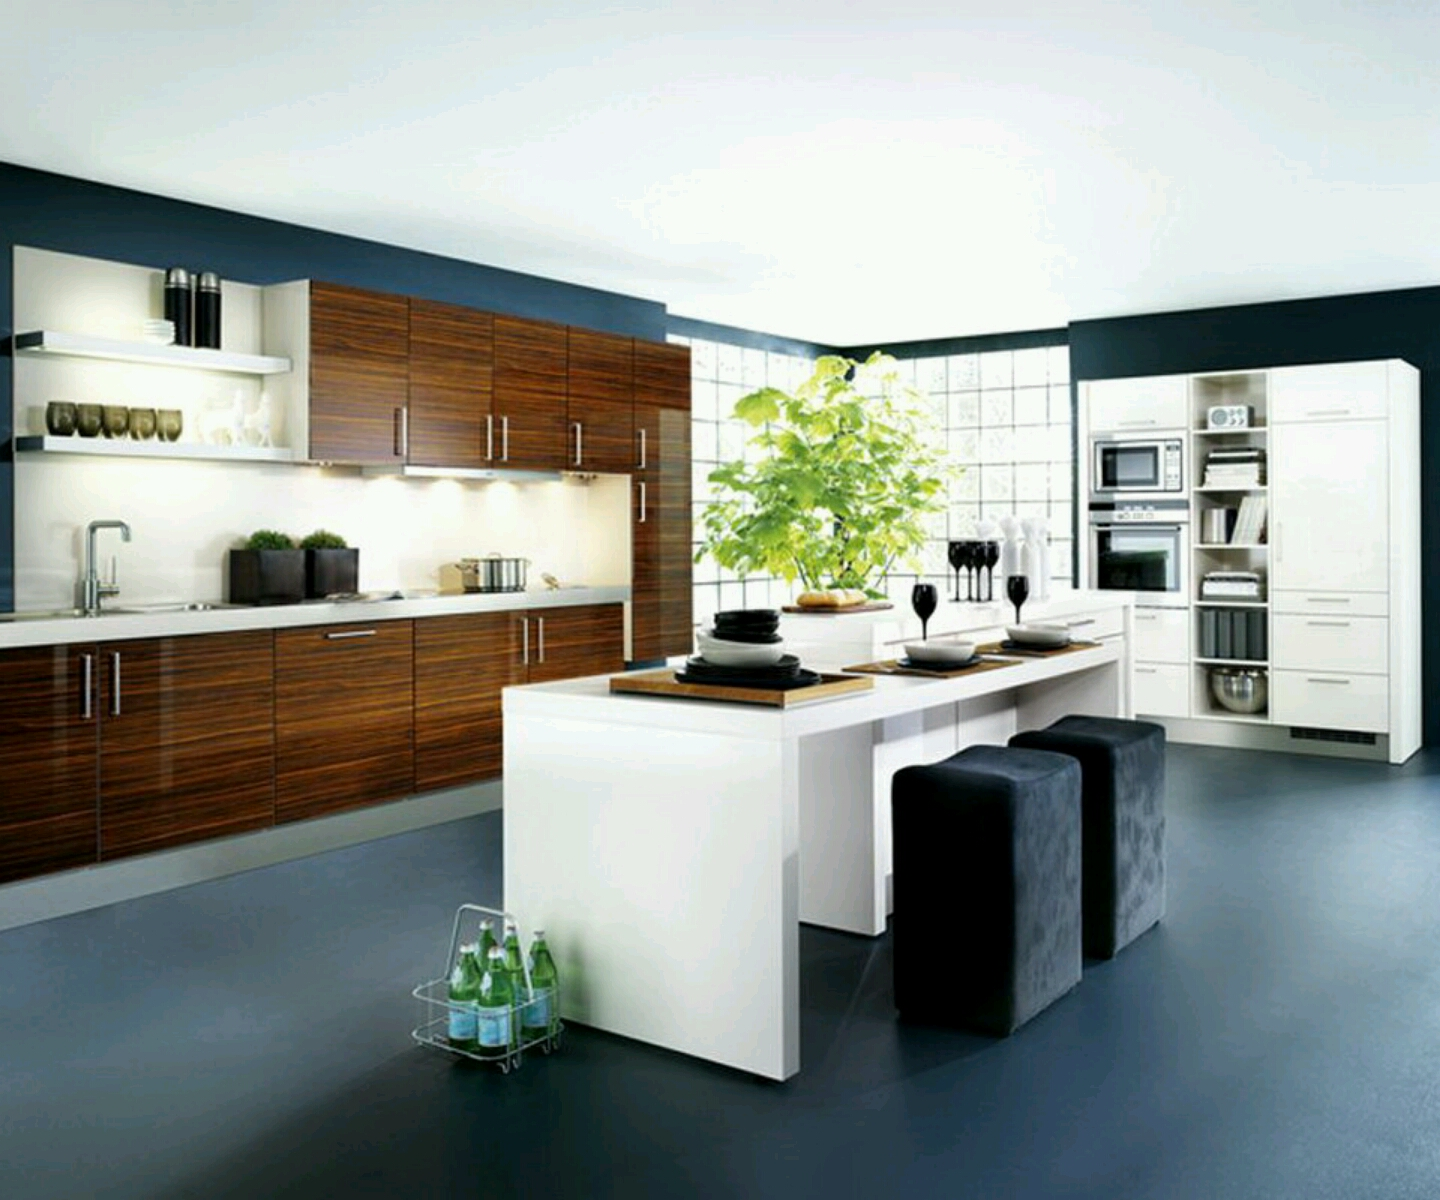 New home designs latest kitchen cabinets designs modern for Modern house kitchen